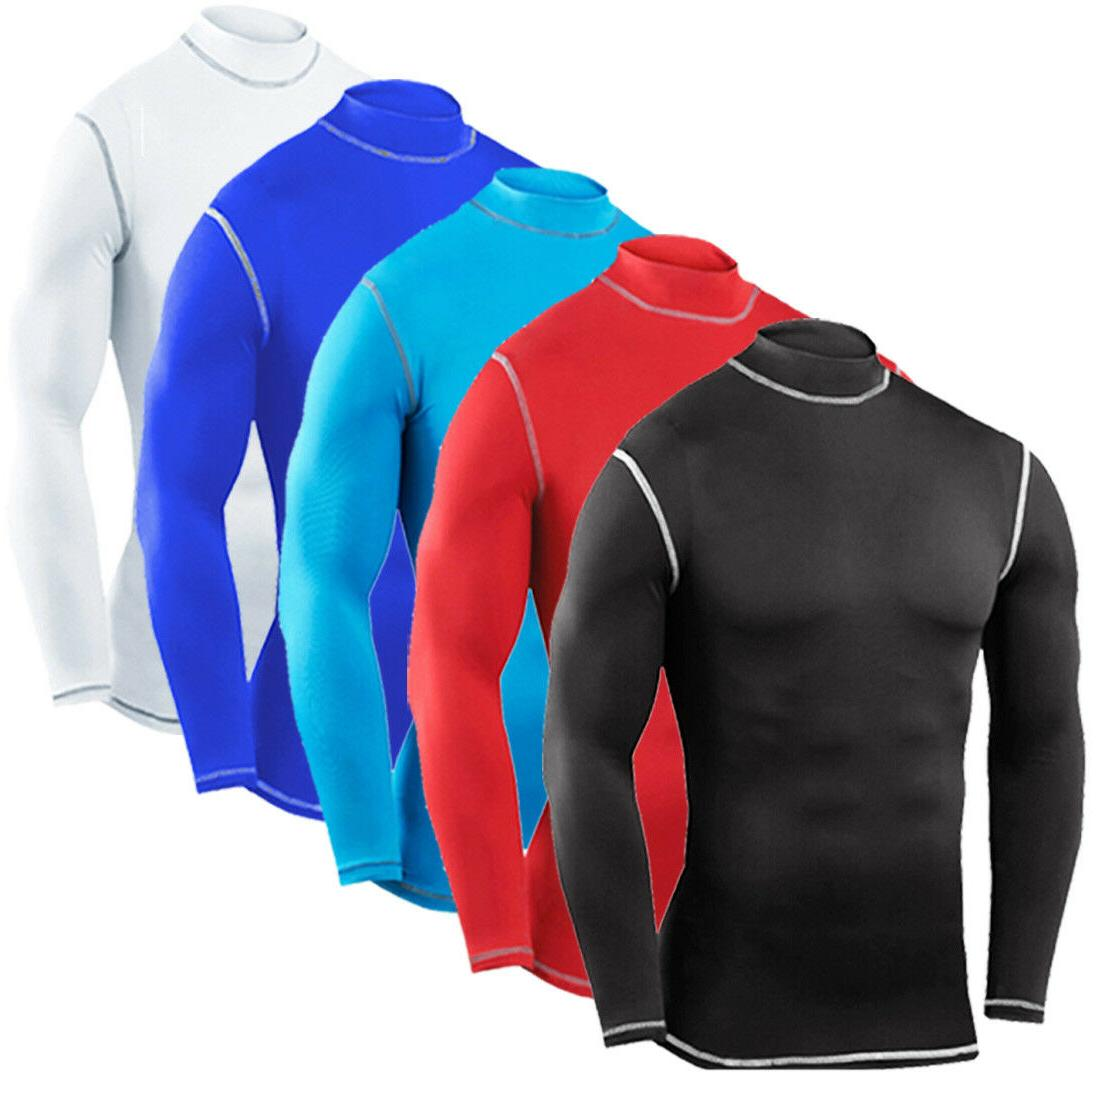 Mens Shirt Sleeve Top Workout Gym Clothes